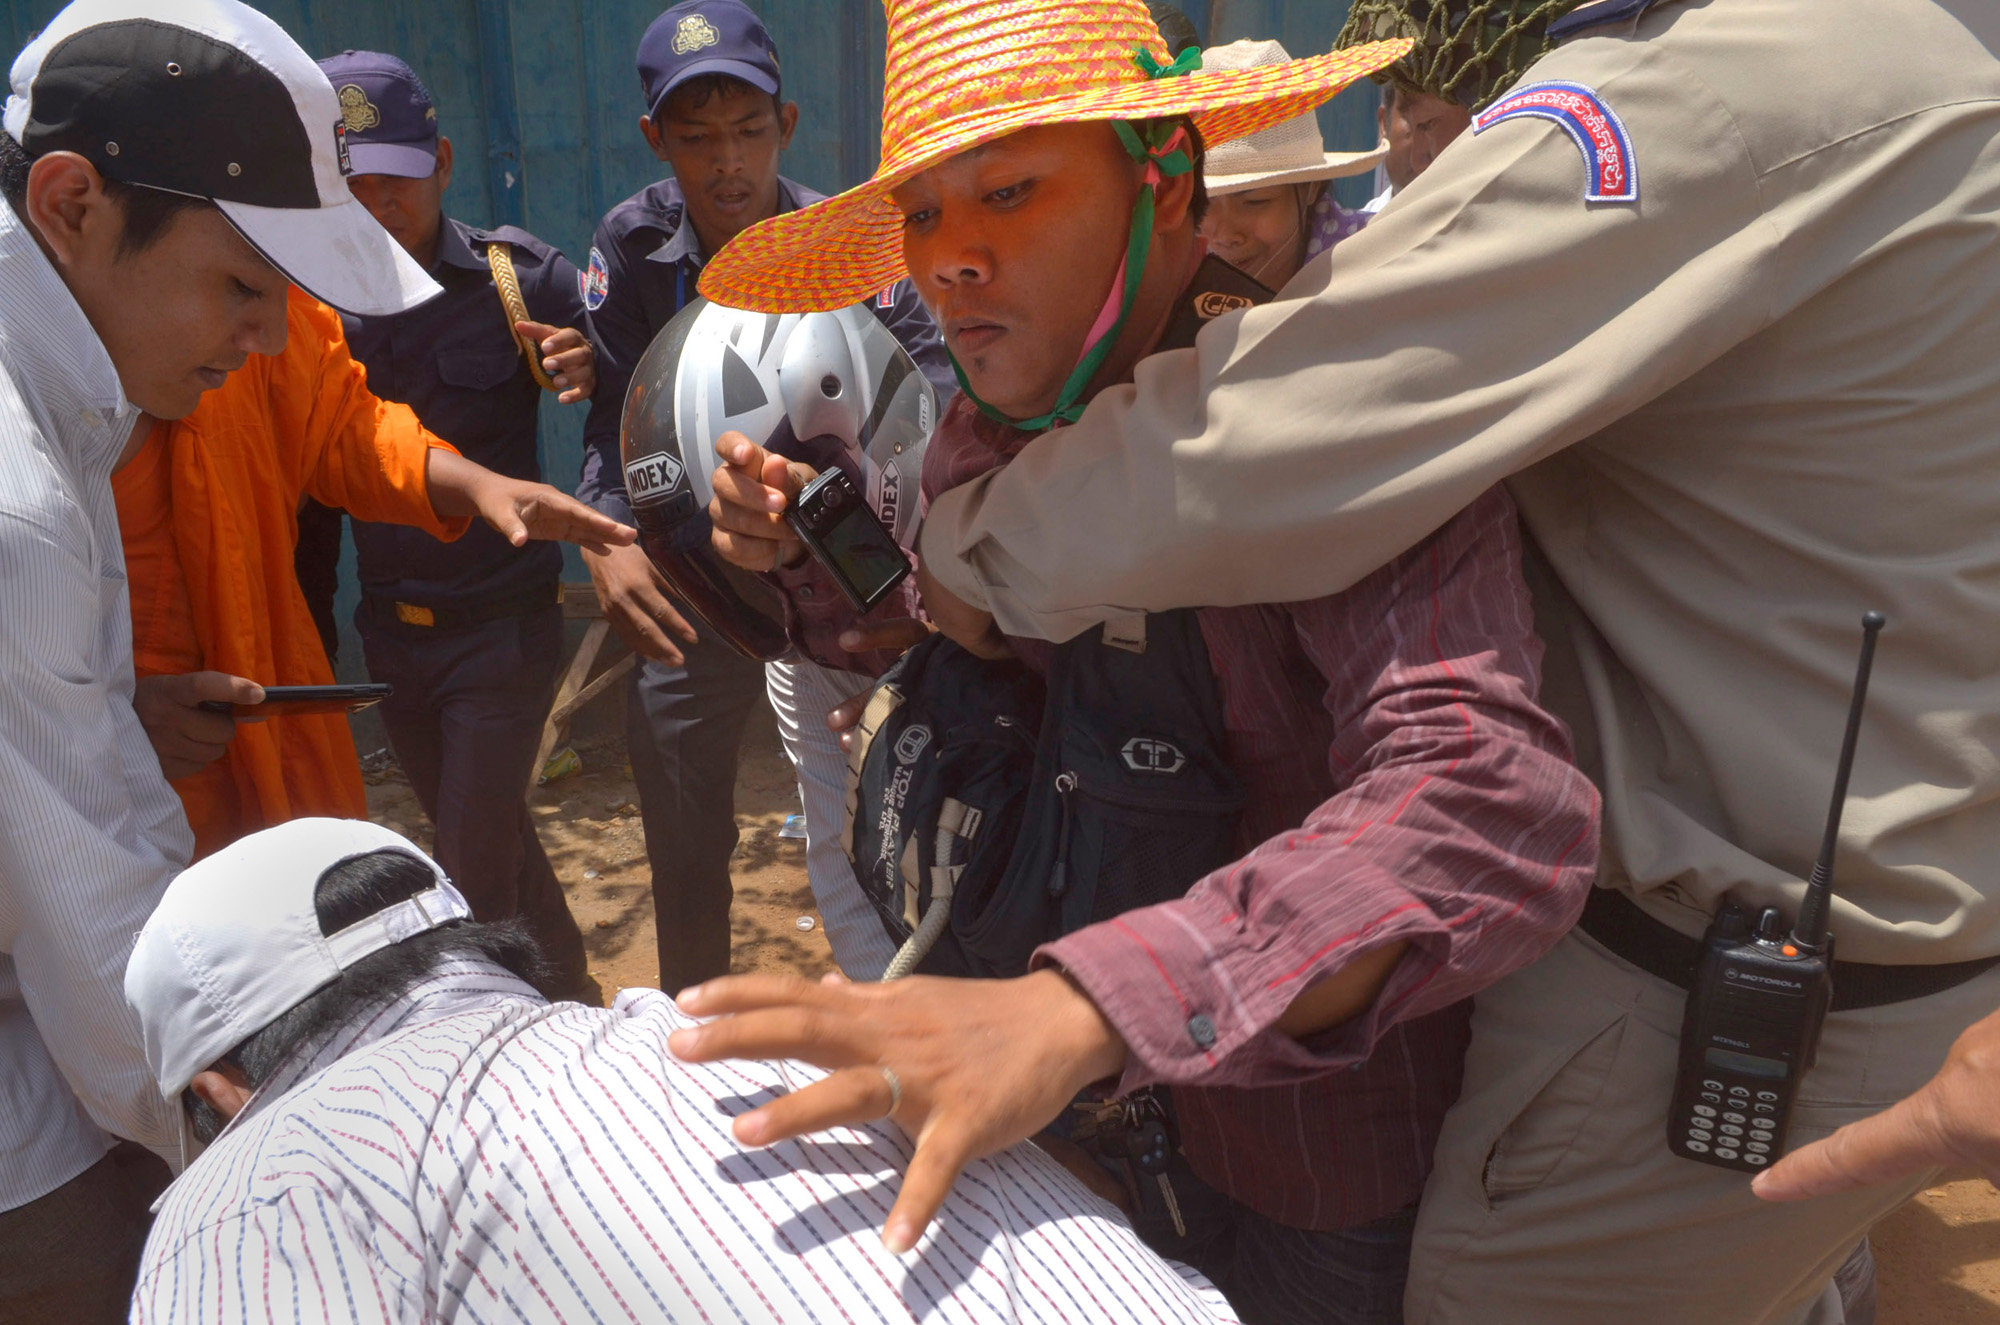 A human rights monitor is manhandled by police as he tries to film an arrest at a protest at the former Boeung Kak Lake in Phnom Penh. Police arrested twelve women for protesting the loss of their homes to a commercial development by Shukaku Corporation, which has since filled in the lake with sand.